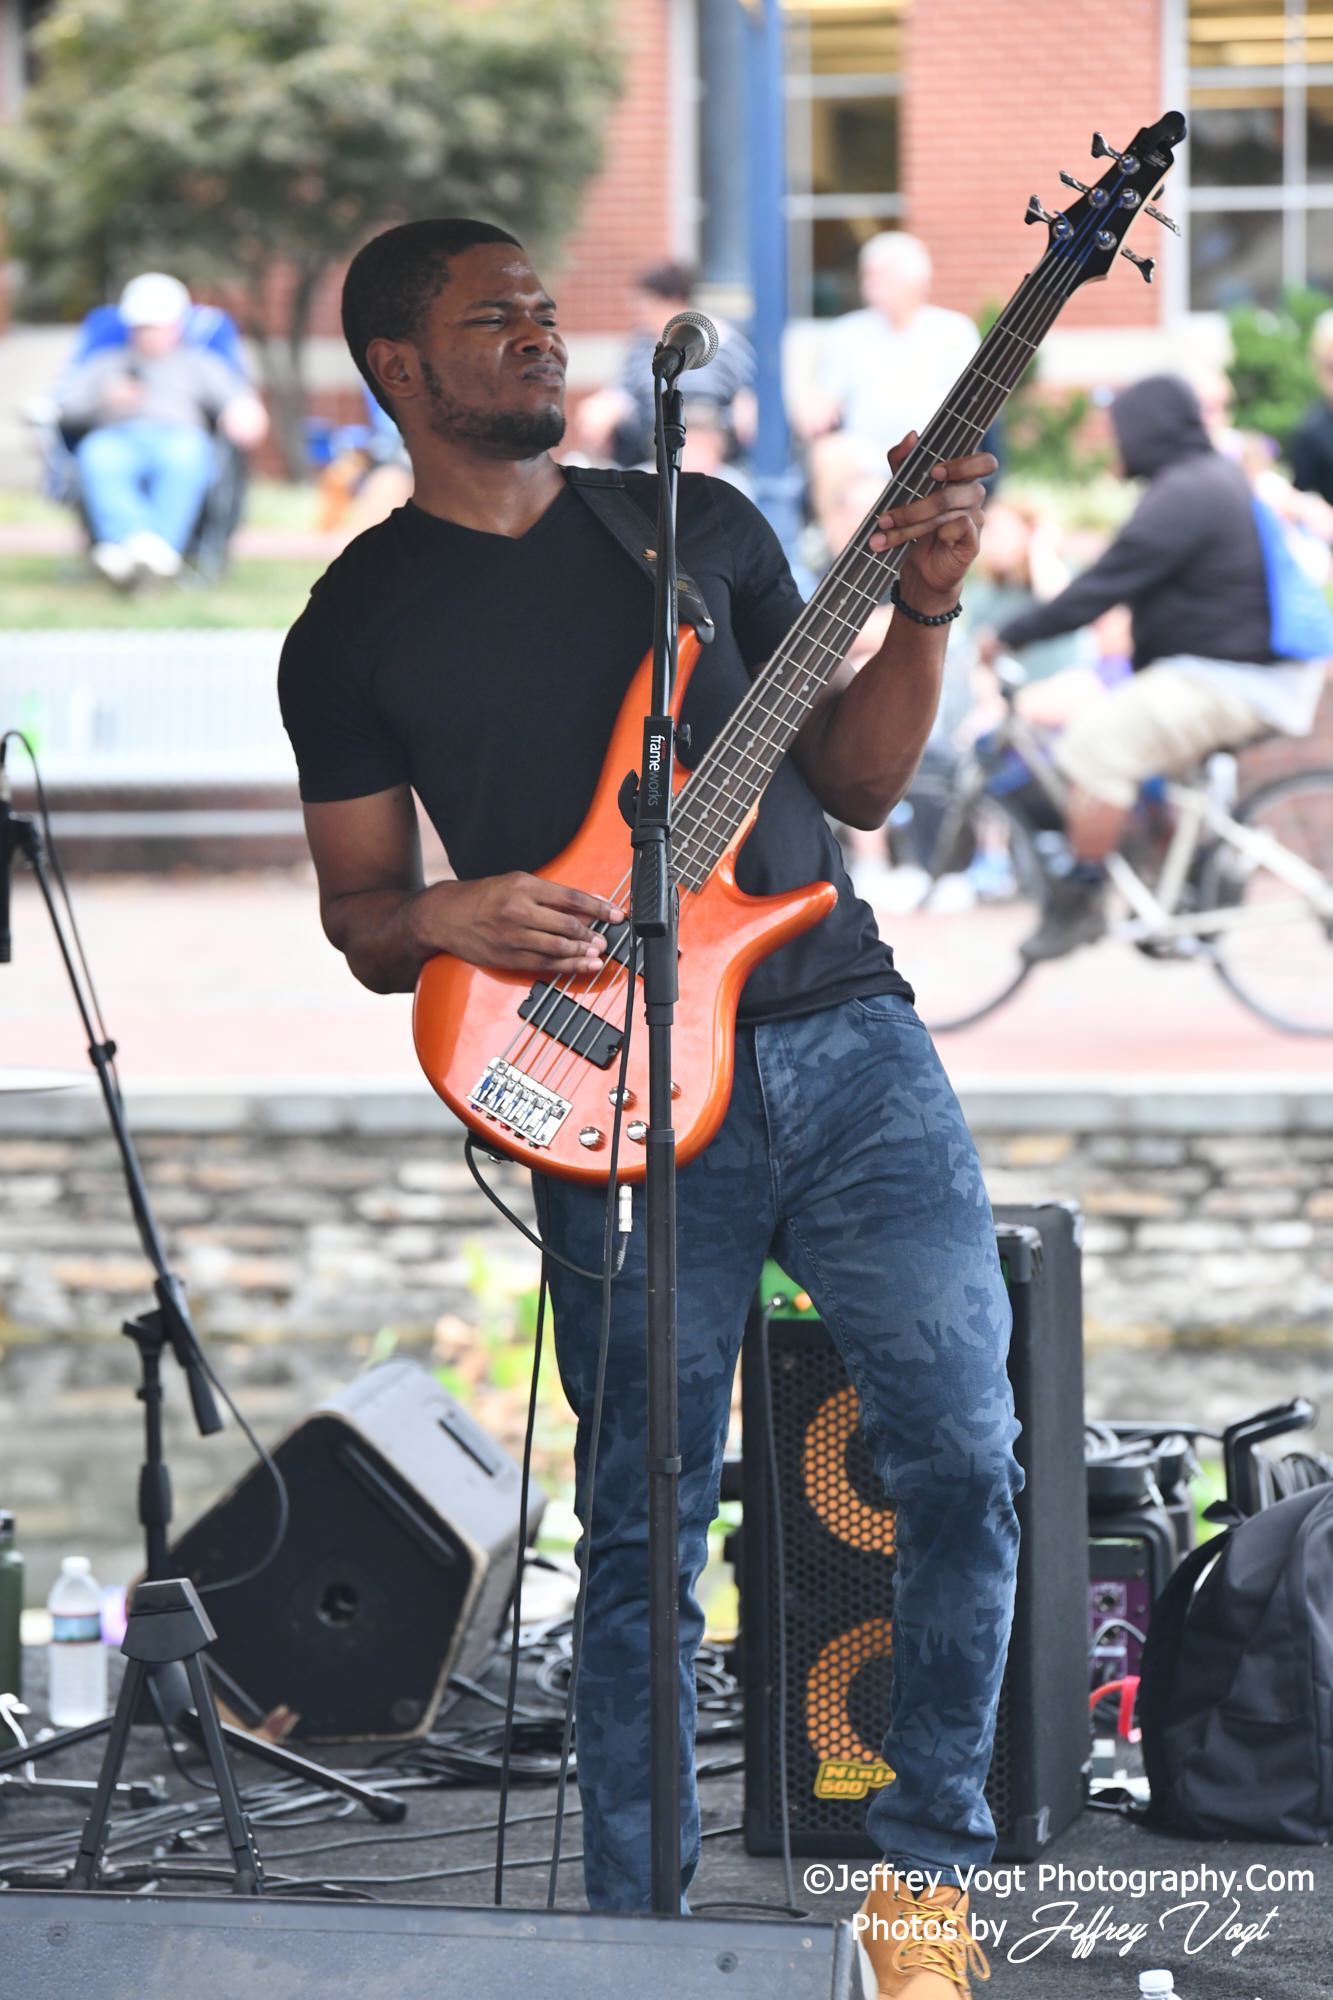 Cameras; Nikon Camera; Nikon 200-400 F4; Nikon D850; Nikon DSLR; Tamron 70-200 F2.8; Tamron 24-75 F2.8; Concerts; Maryland; Frederick Maryland; Frederick; 10/03/2019; Band Photo; Band; Band Photography; Band Photos; Bands; Concert Photo; Concert Photos; Concert Photography; Cover Bands; Cover Songs; DMV Music; DMV Music Photos; DMV Music Photography; Genres; Acoustical; Alternative Rock; Classic Rock; Indie Rock; Pop Rock; Rock; Rock and Roll; Gig Photos; Gig Photography; Gig Photographer; Hayley Fahey Band; Julian Lofton; John Trupp; Hayley Fahey; Jeffrey Vogt; Jeffrey Vogt Photography; Jeffrey Vogt Photos; Photography by Jeffrey Vogt; Photos by Jeffrey Vogt; www.jeffreyvogtphotography.com; Live Music; Live Music Photos; Live Music Photography; Music; Musicians; On Stage; Venues; Downtown Frederick Partnership; Alive at Five; Carroll Creek Amphitheater;